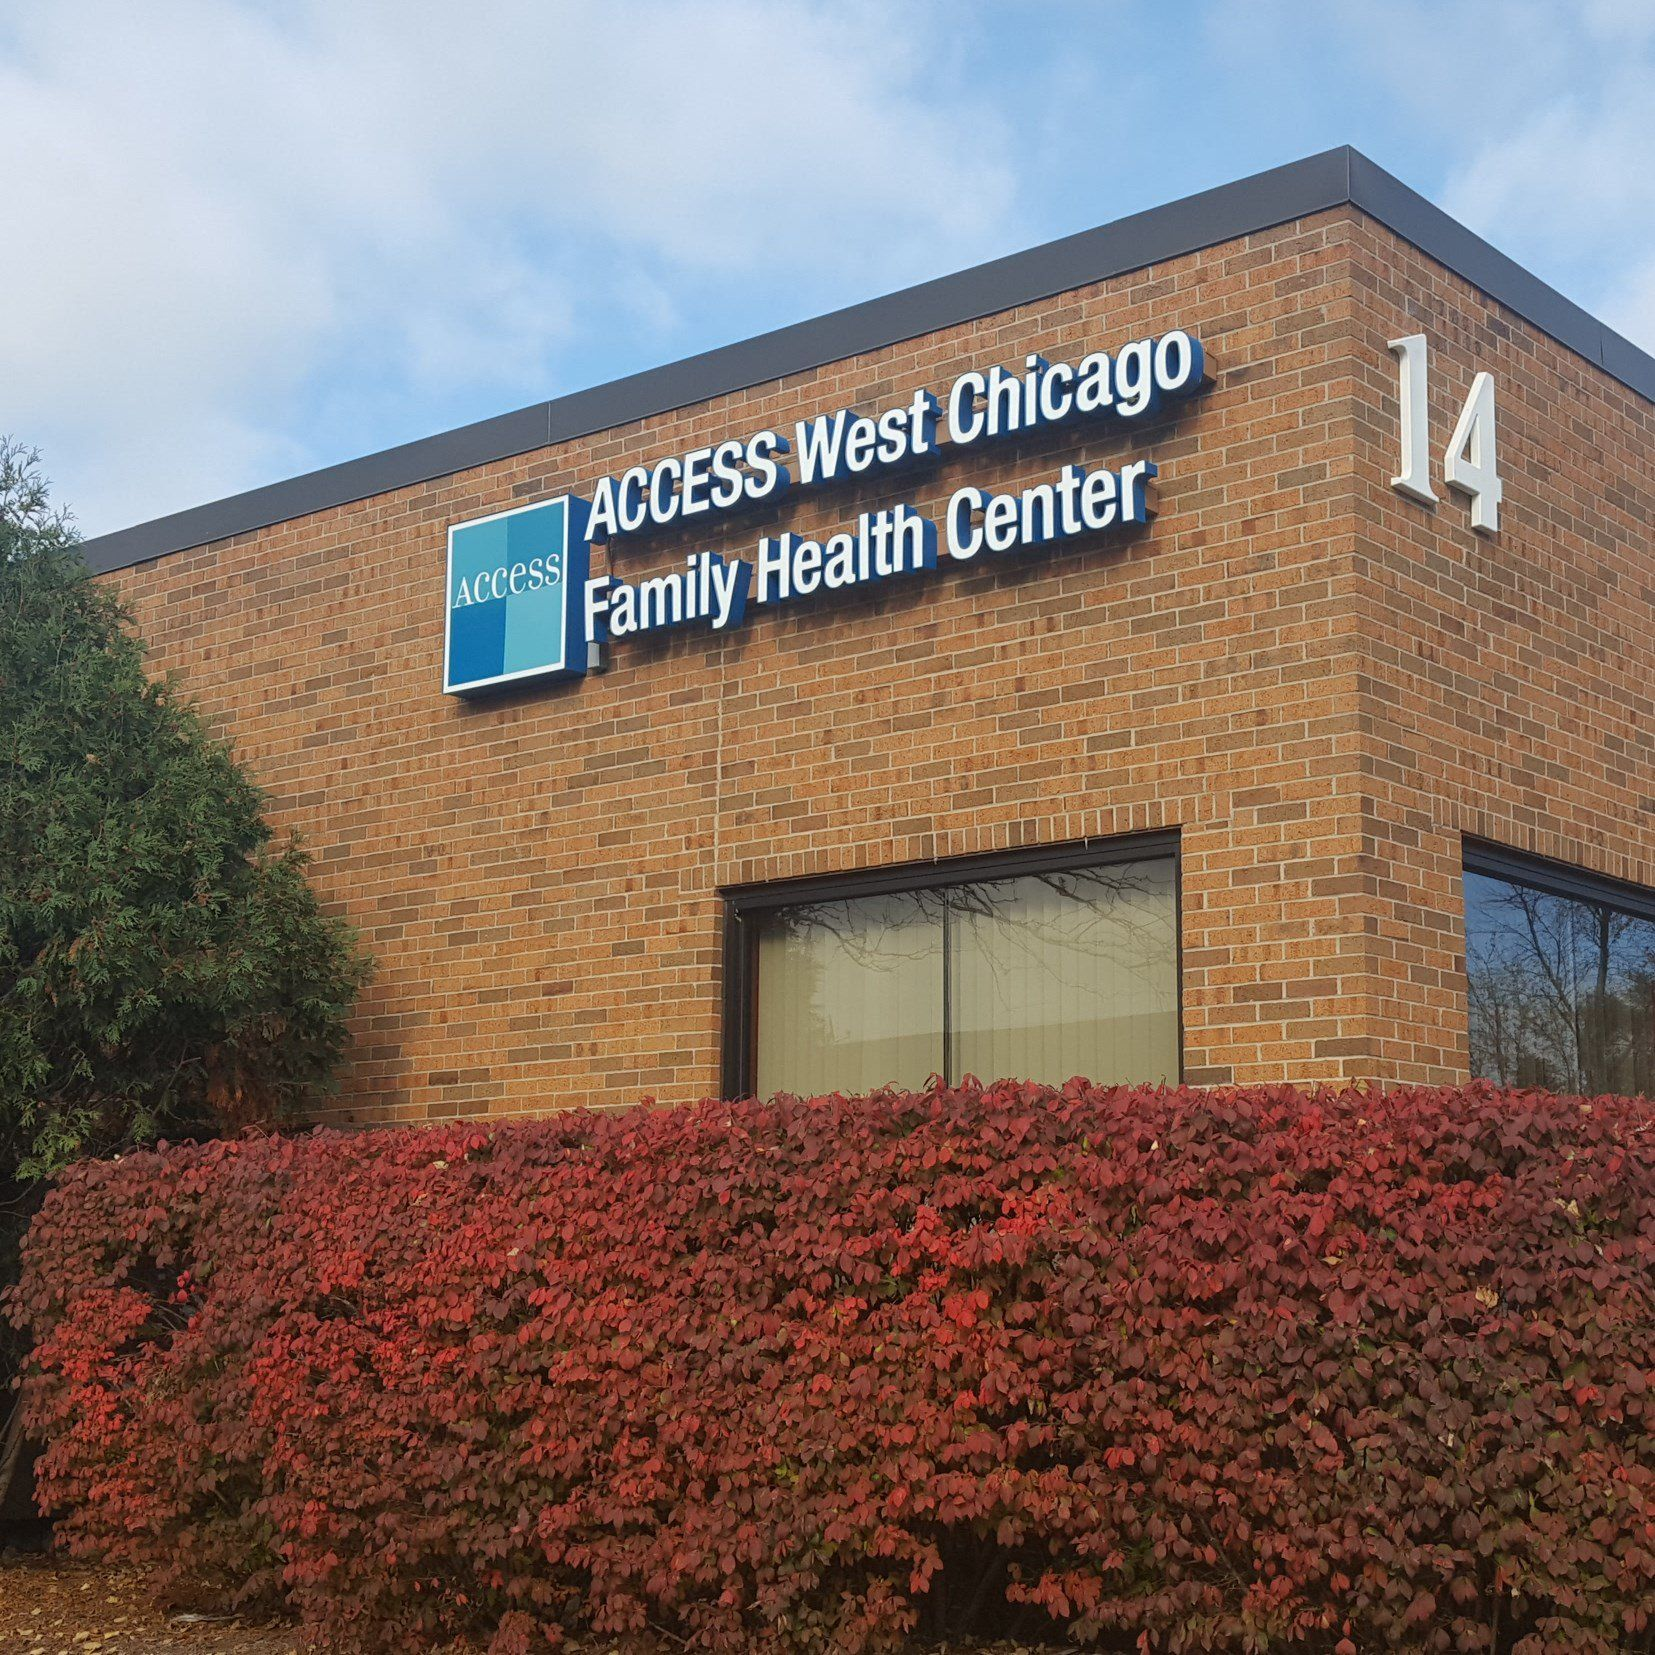 West Chicago Family Health Cen